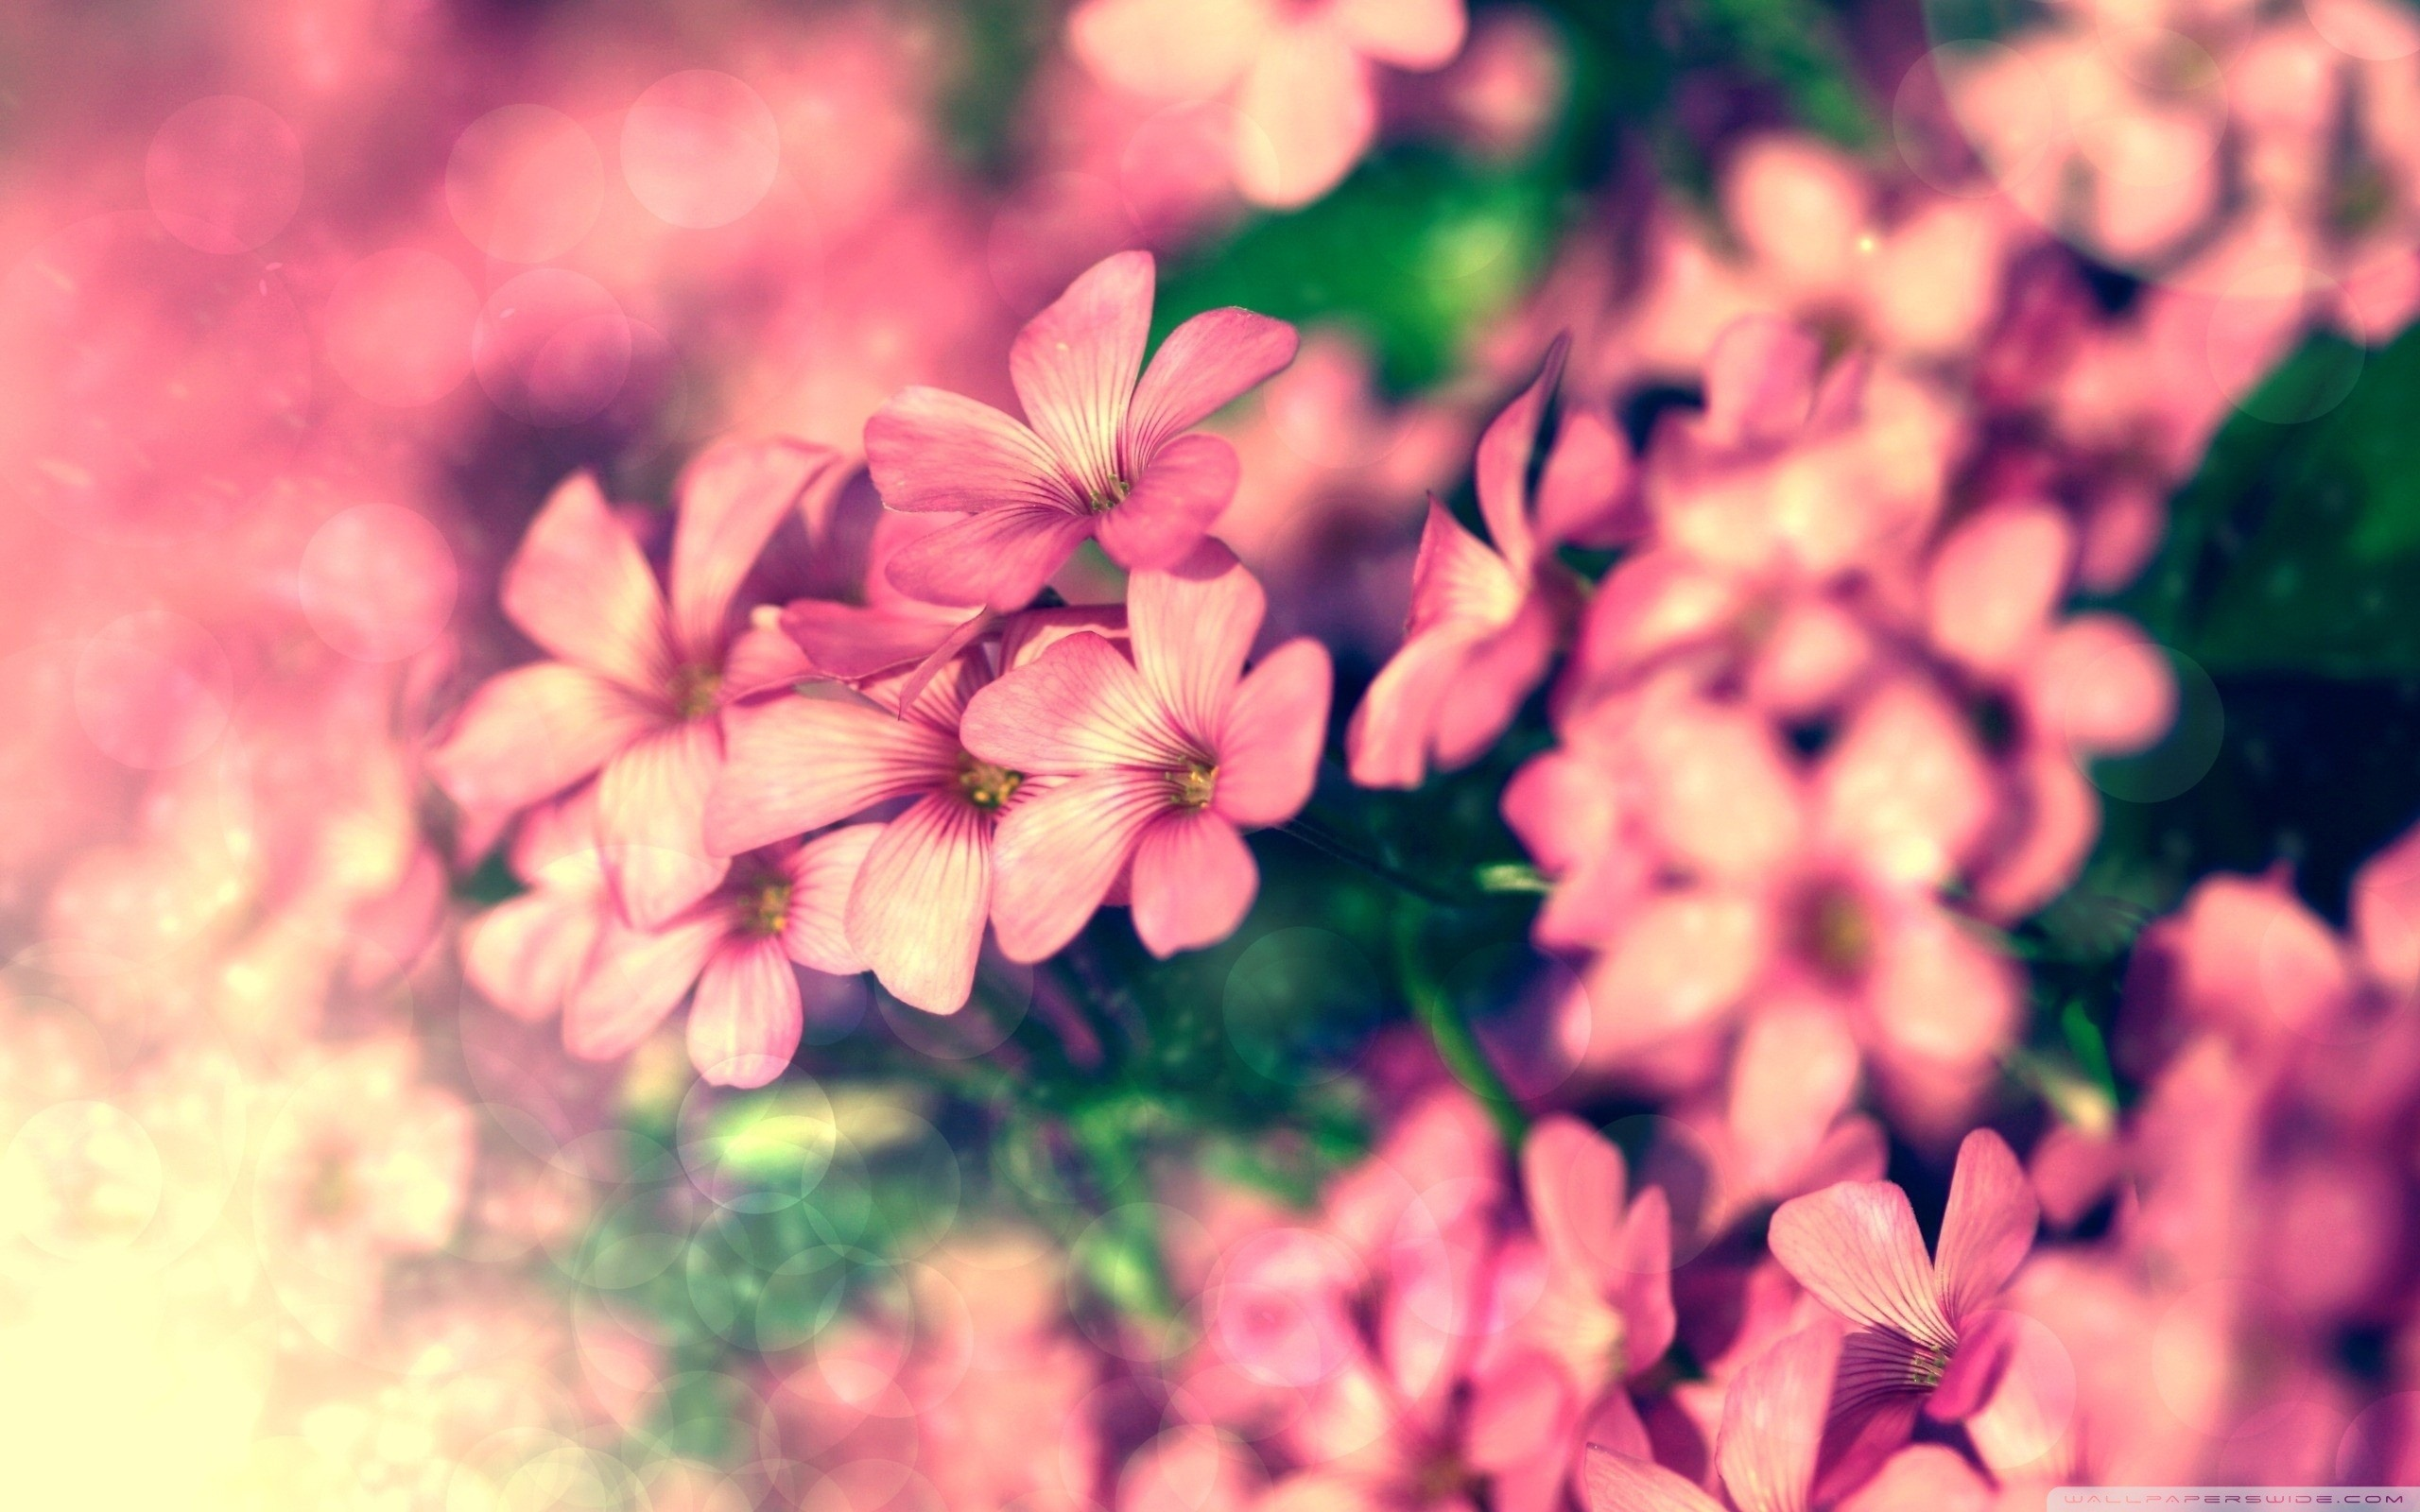 Tiny pink flowers beautiful flowers desktop wallpaper preview original resolution 2560x1600 izmirmasajfo